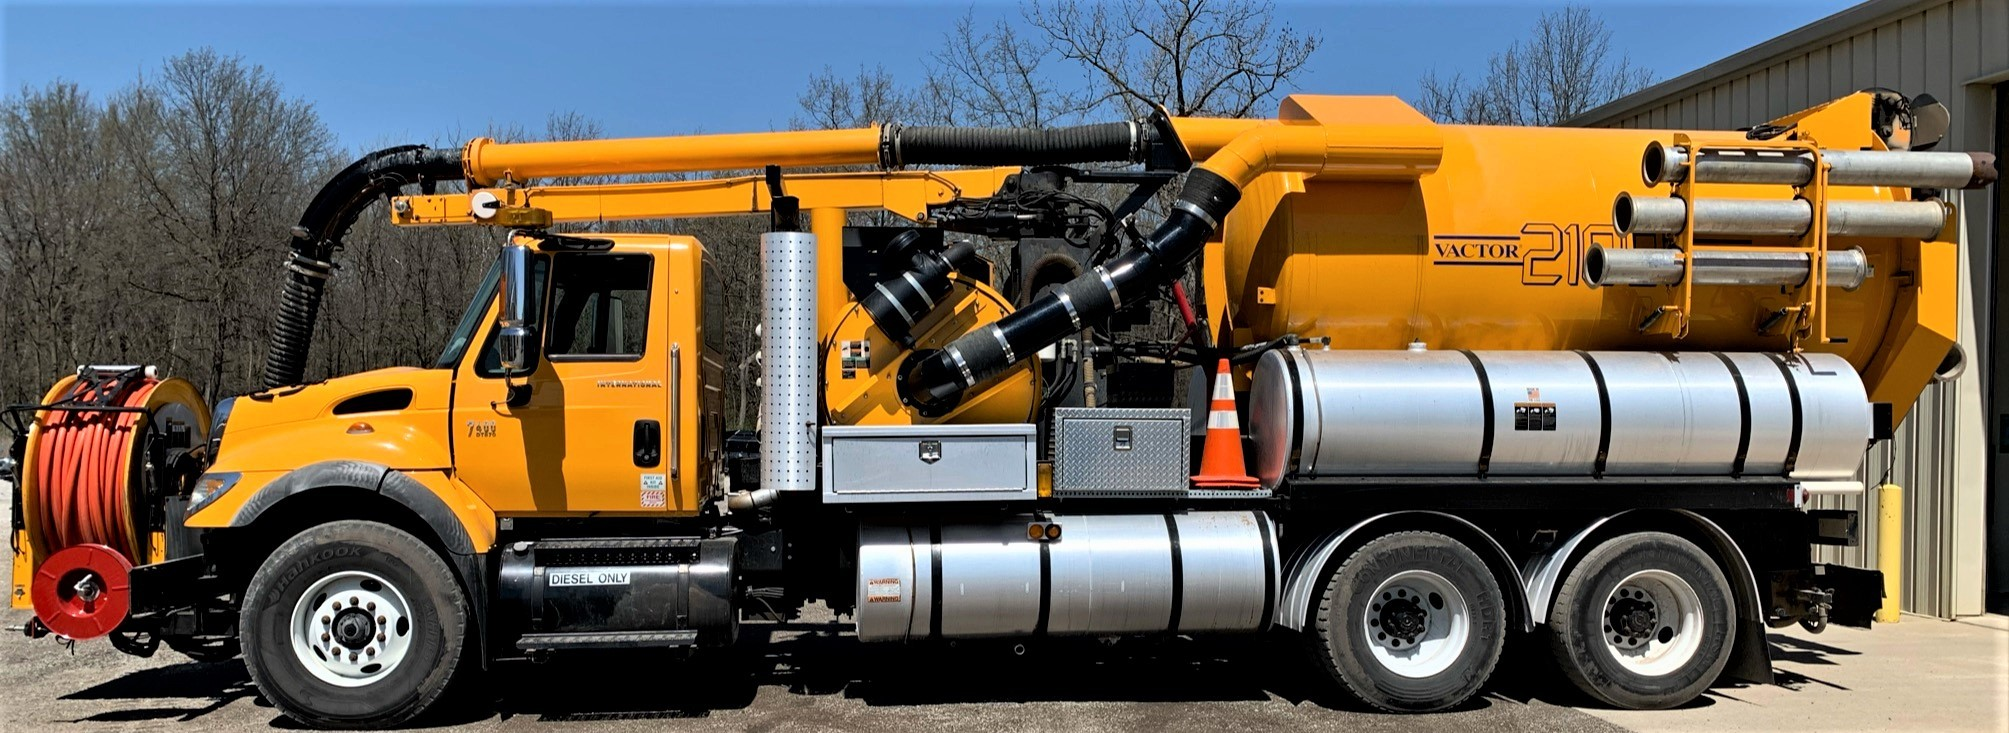 Used, 2006, Vactor, 2115-J6 Combination Sewer Cleaner, Tank & Vacuum Bodies